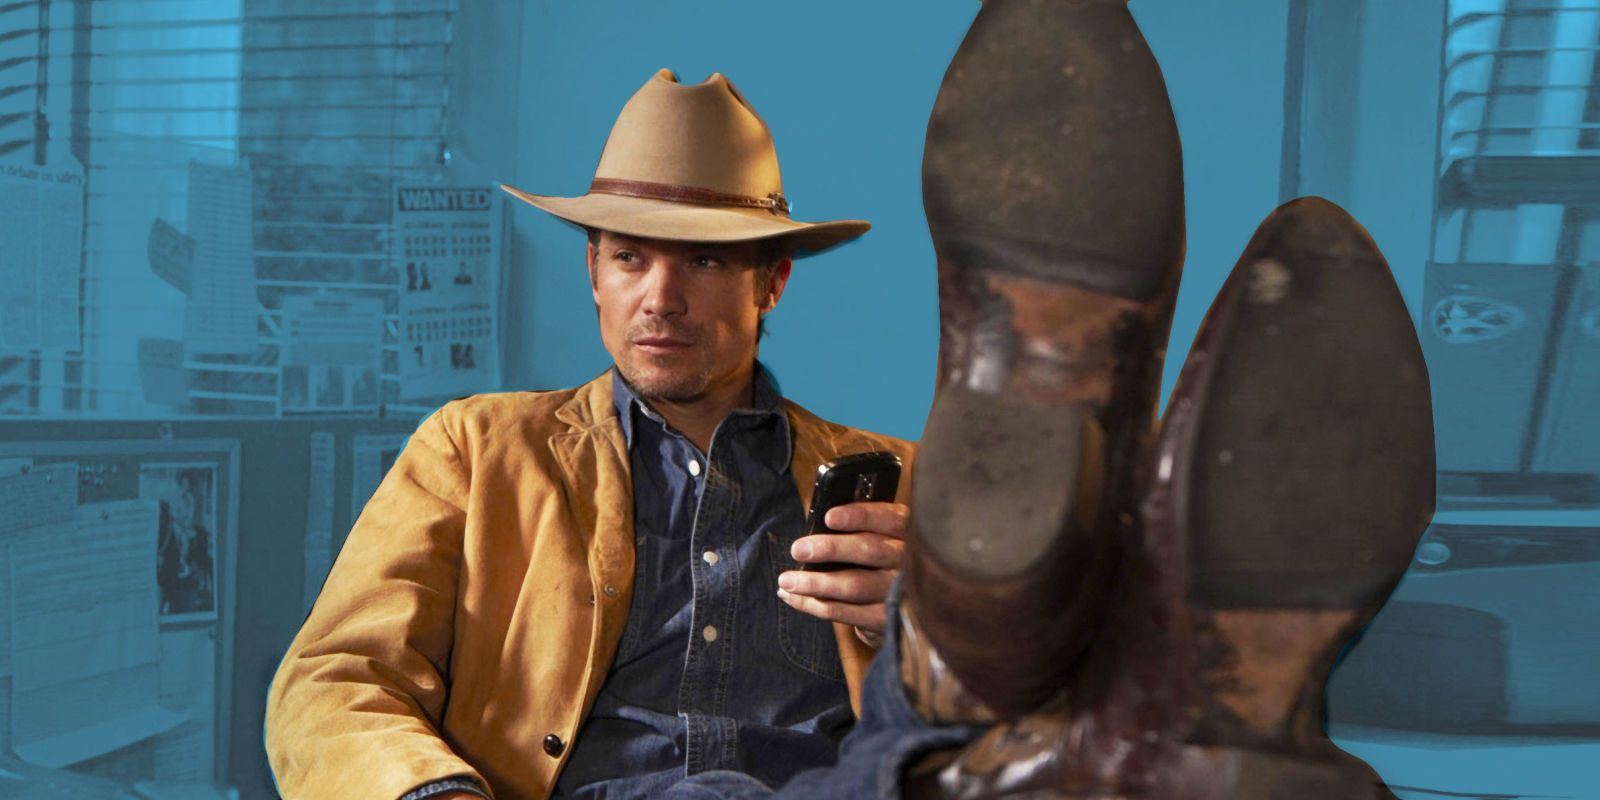 The 'Justified' Cast on Raylan Givens, Son of a Bitch